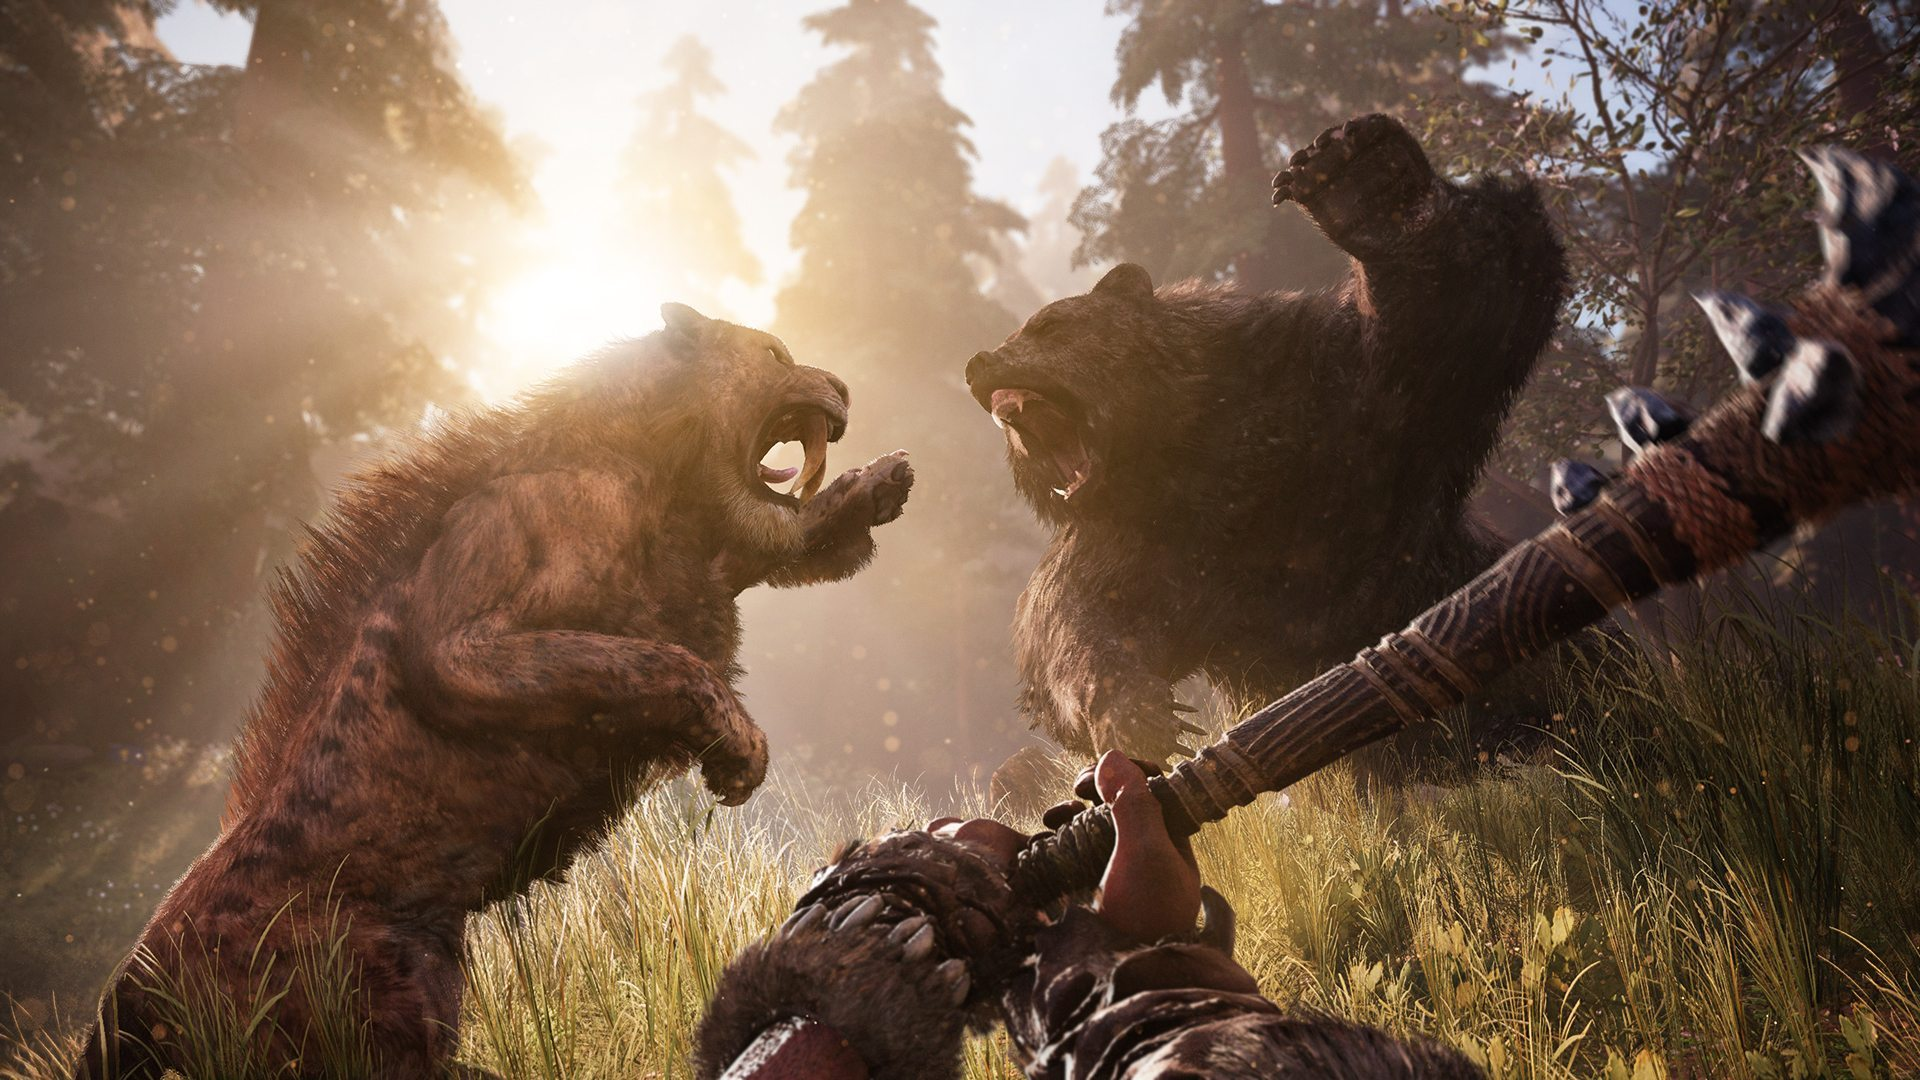 Bagogames_Far_Cry_Primal_review_2016